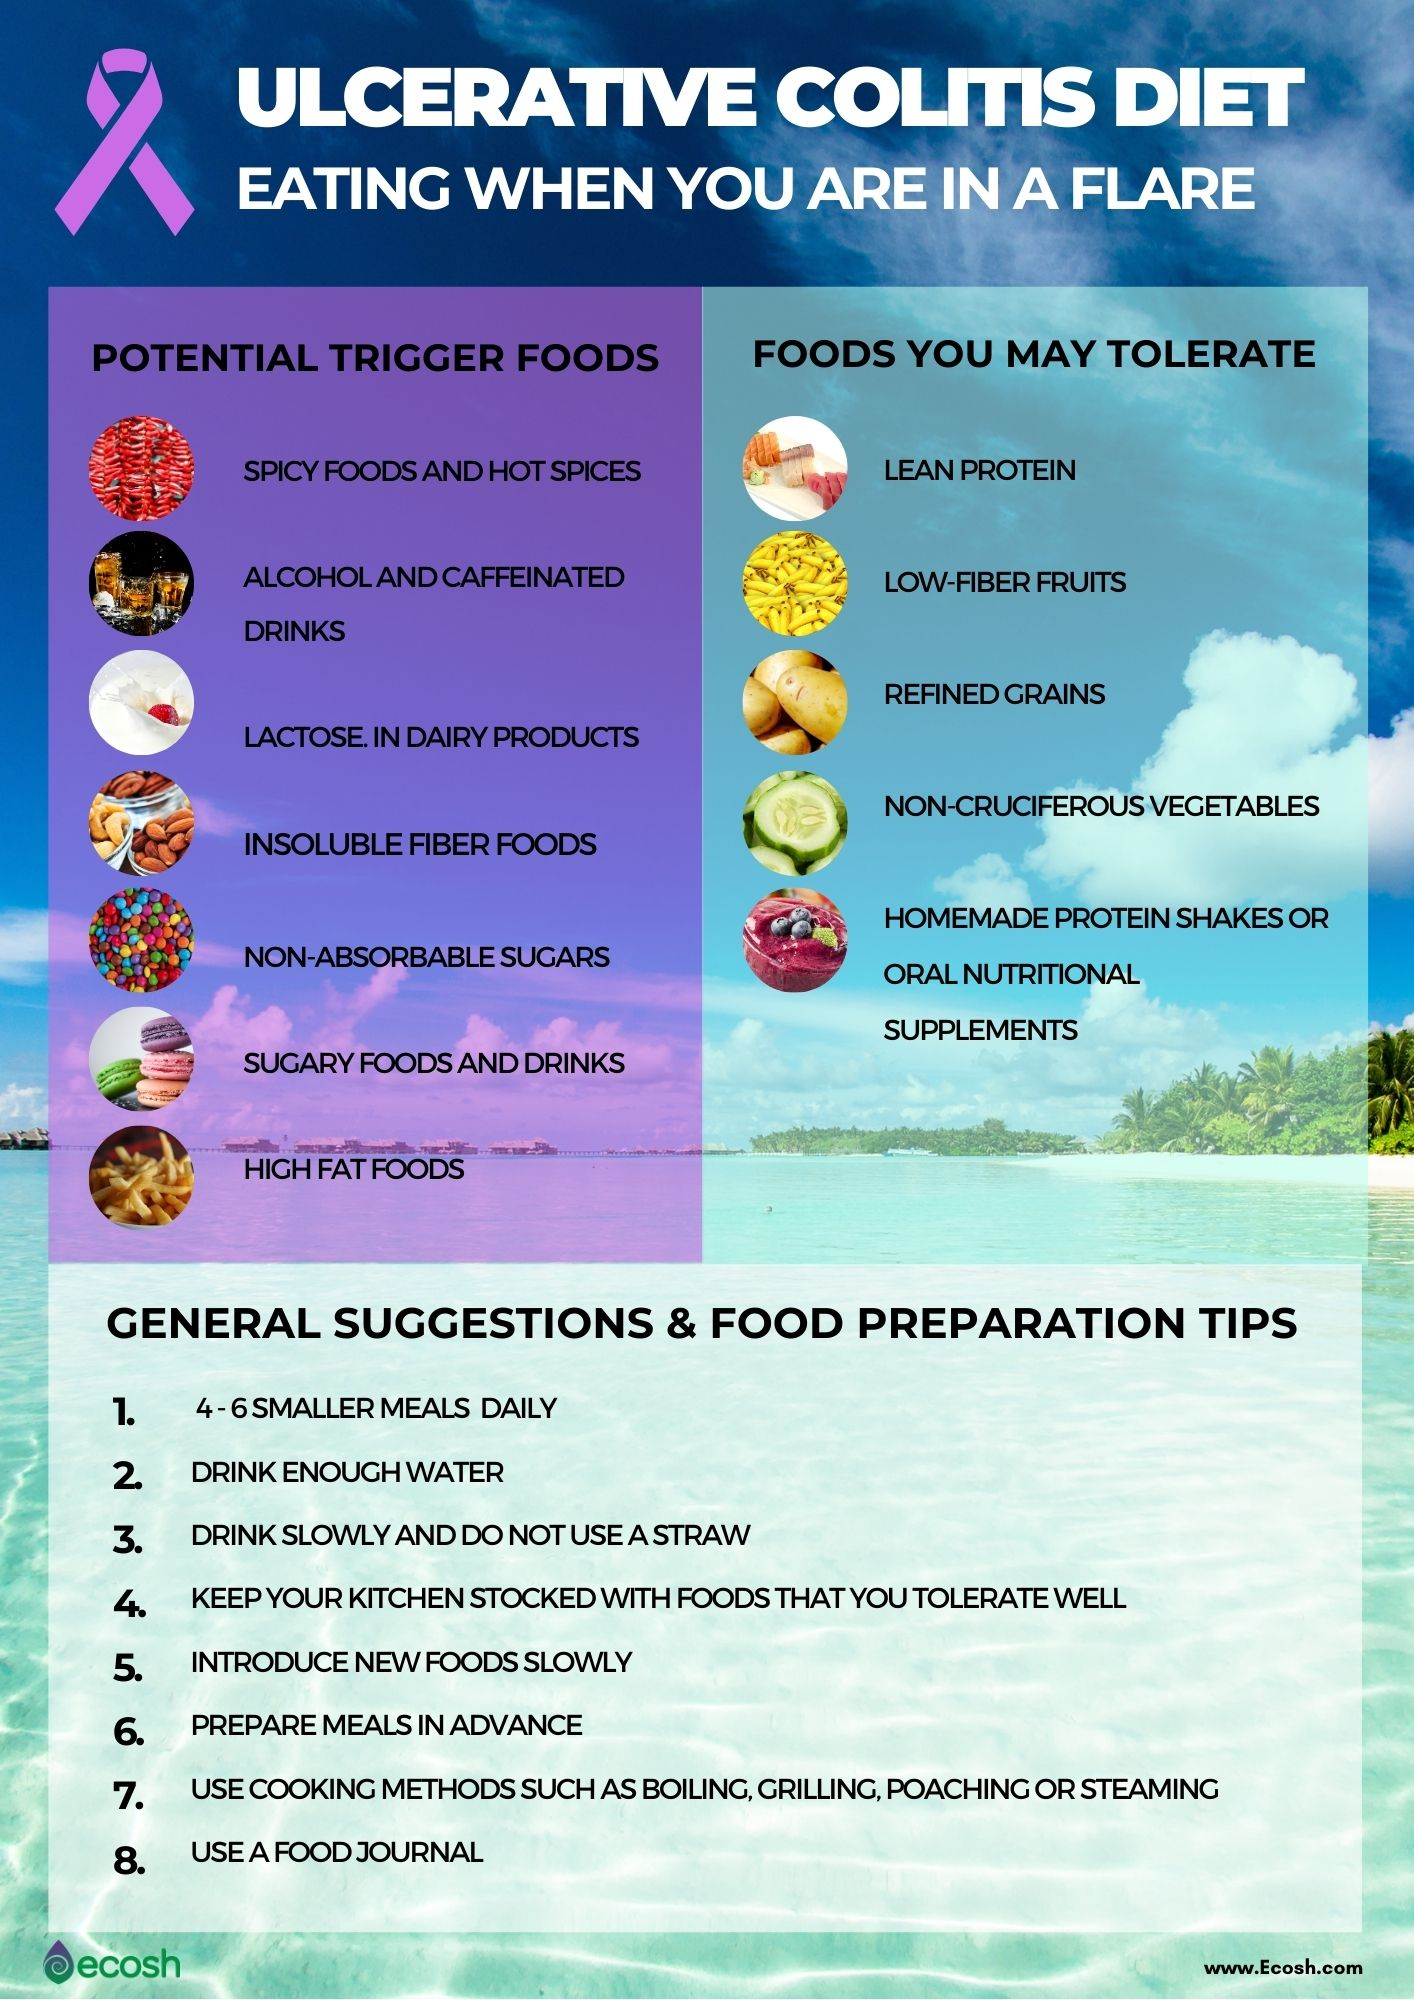 Ulcerative_Colitis_Diet_Eating_When_You_are_in_a_Flare_Eating_when_You_are_in_a_Remission_Food_Preparation_Tips_Diet_for_Ulcerative_Colitis_Ulcerative_Colitis_Diet_Tips_Eating_in_Colitis